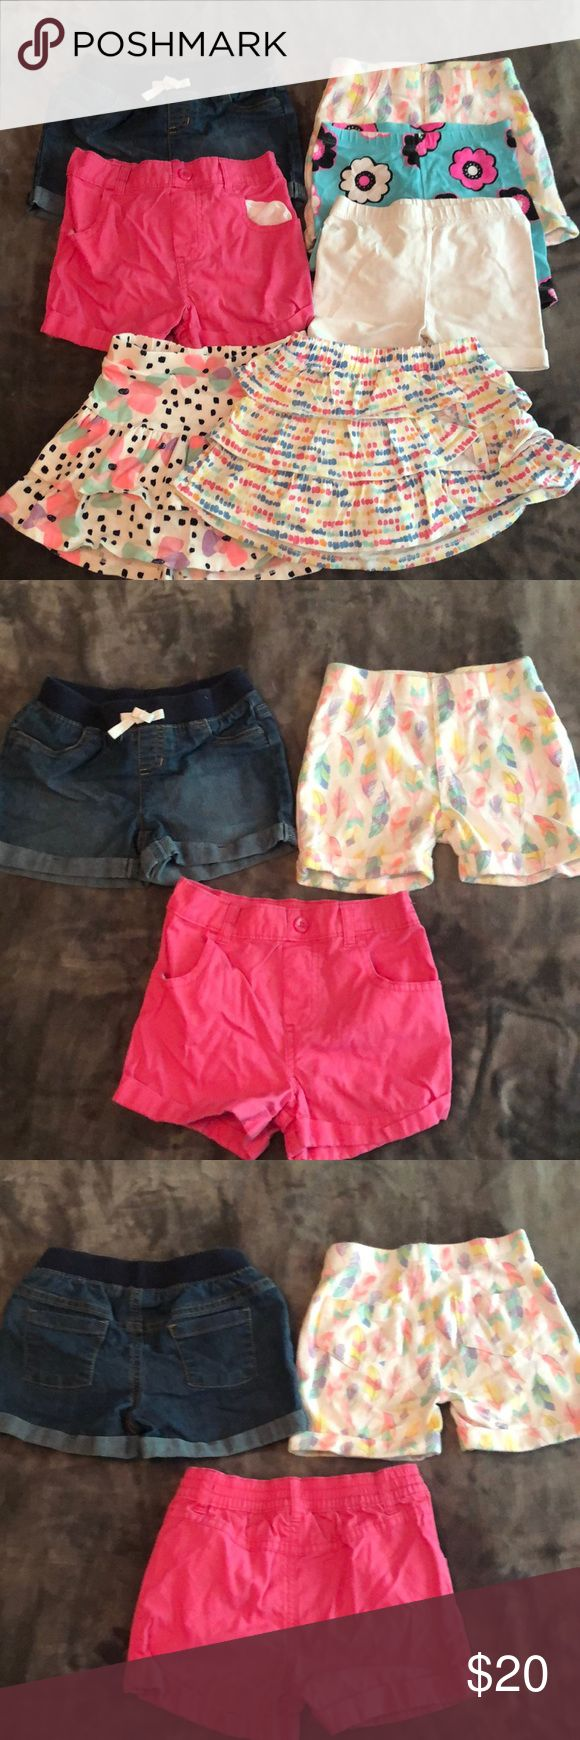 Girls summer lot 5 pairs of shorts 1 blue jean jumping beans size 4t elastic wai...